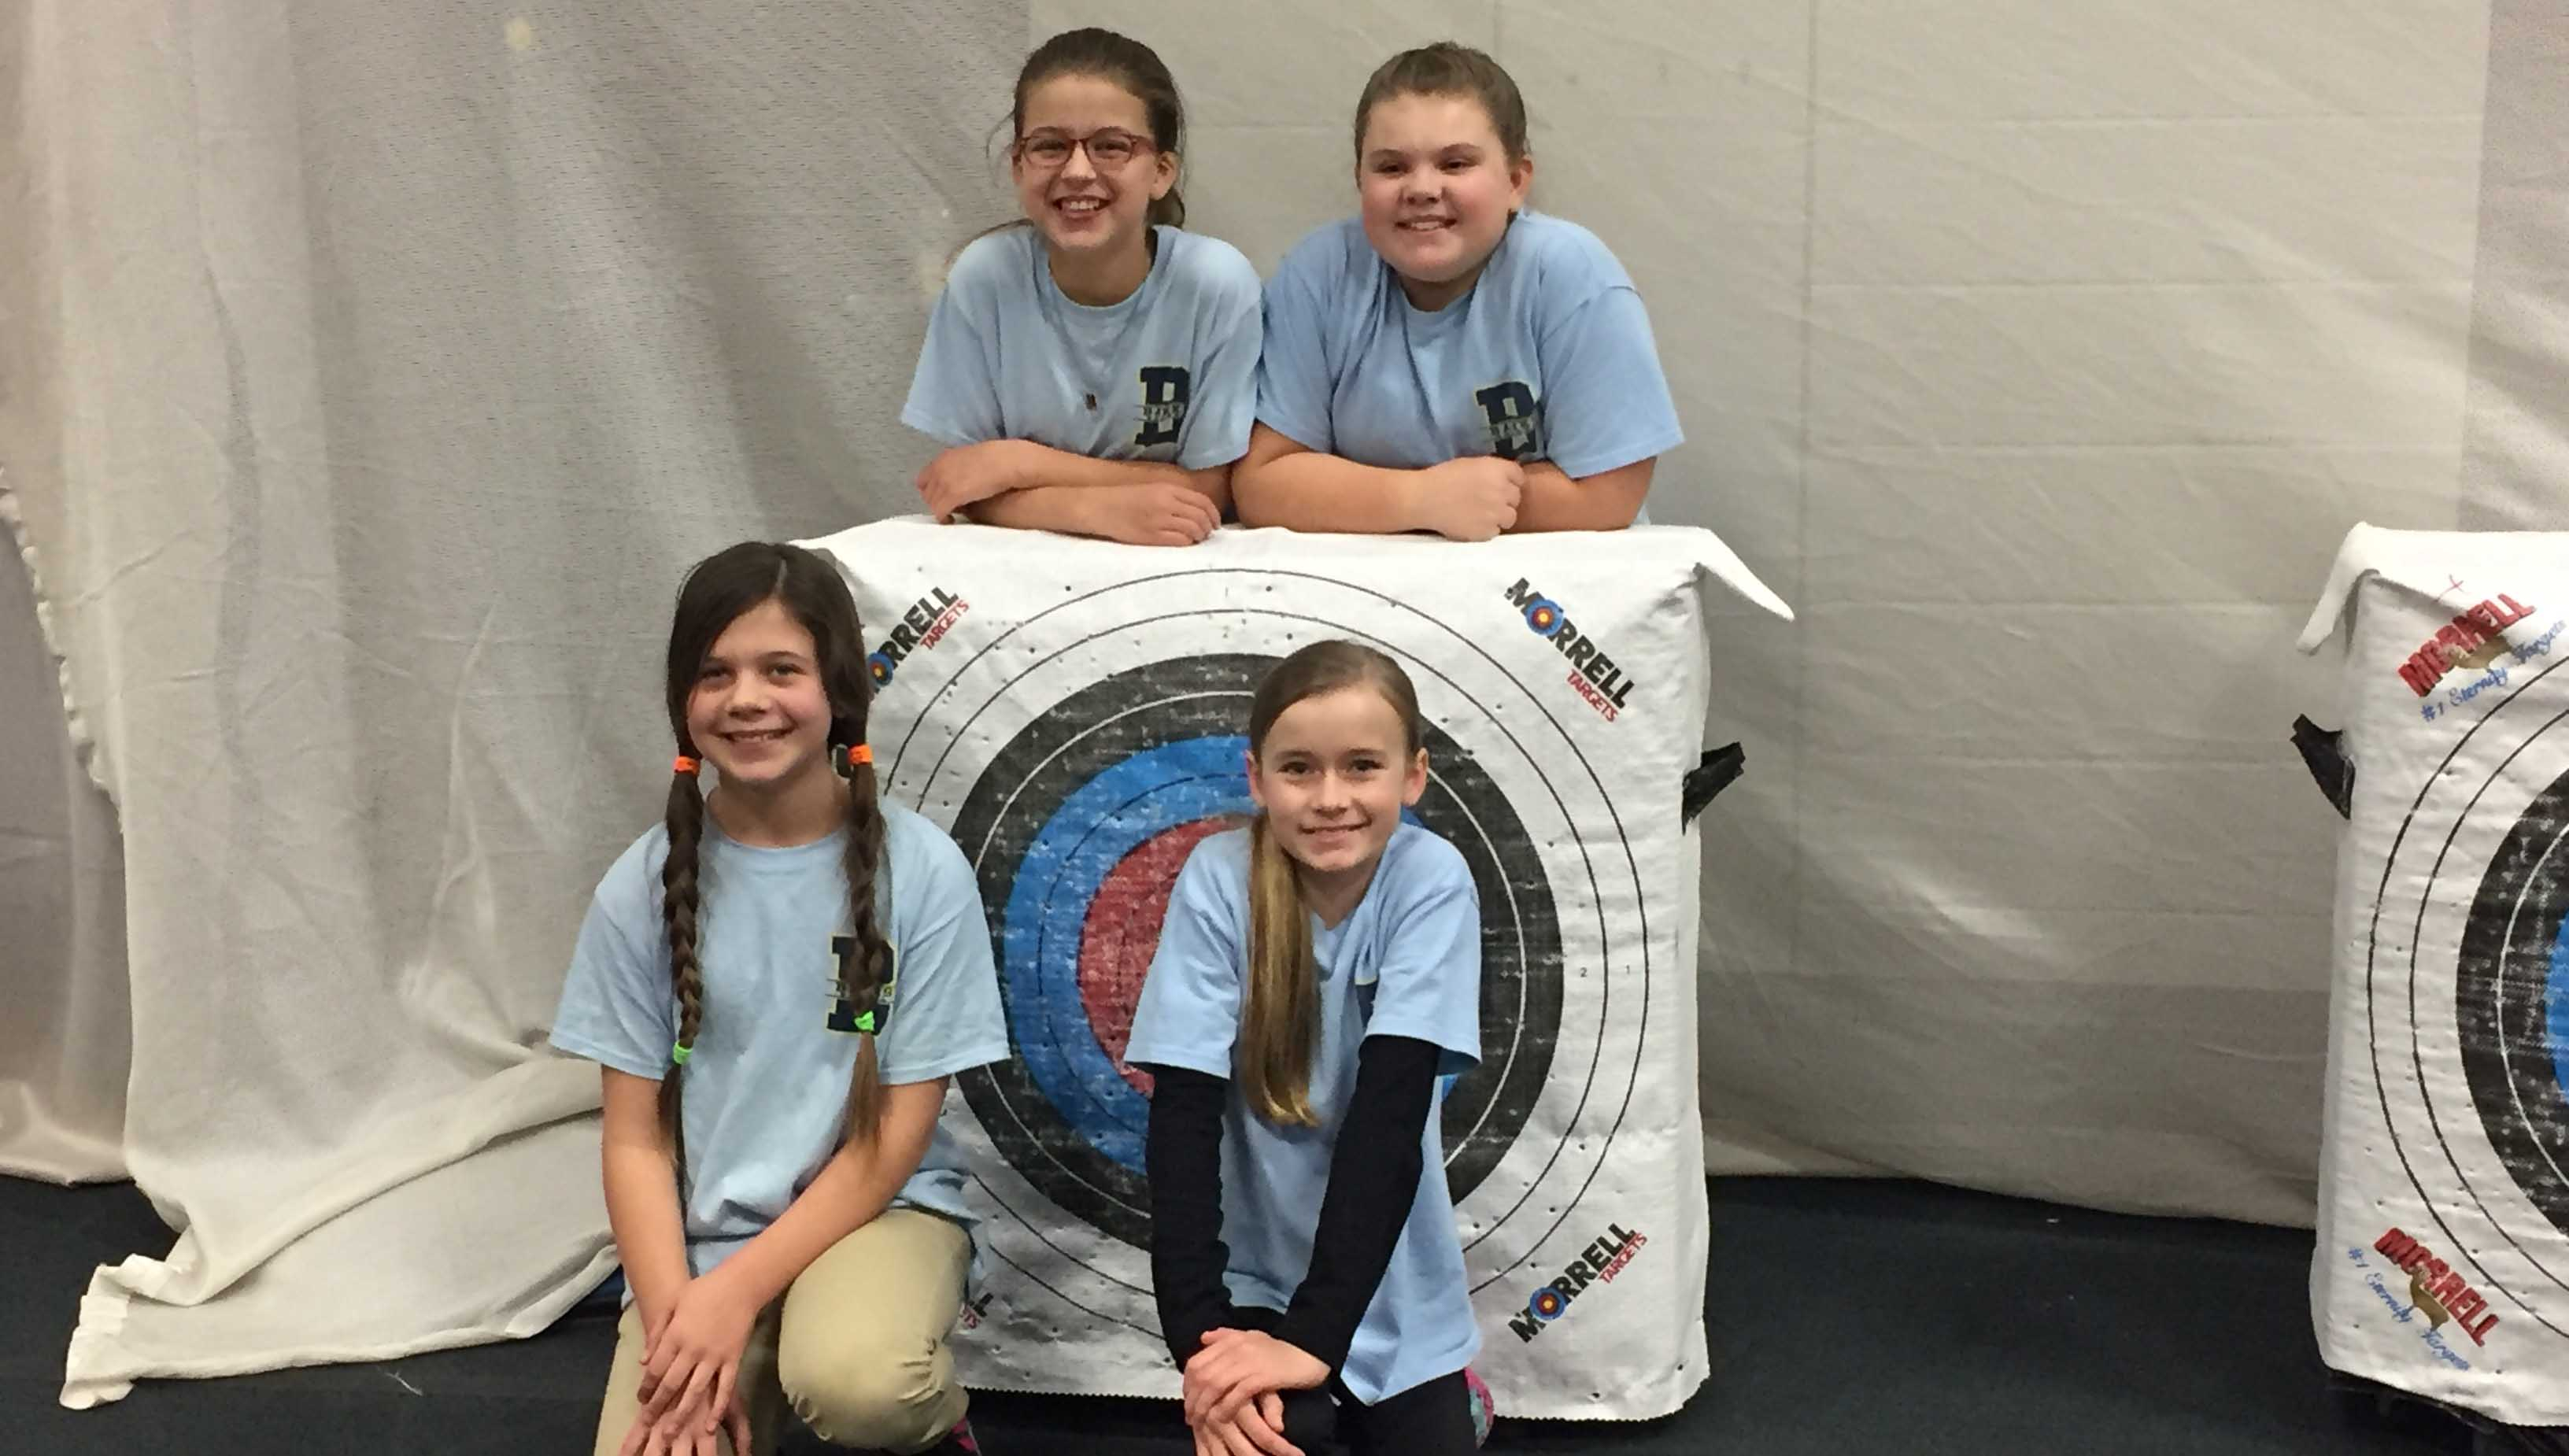 submitted Photo The Banks School participated in the Troy's January Jam Archery Tournament last weekend. They will participate in the regional tournament beginning on February 9.